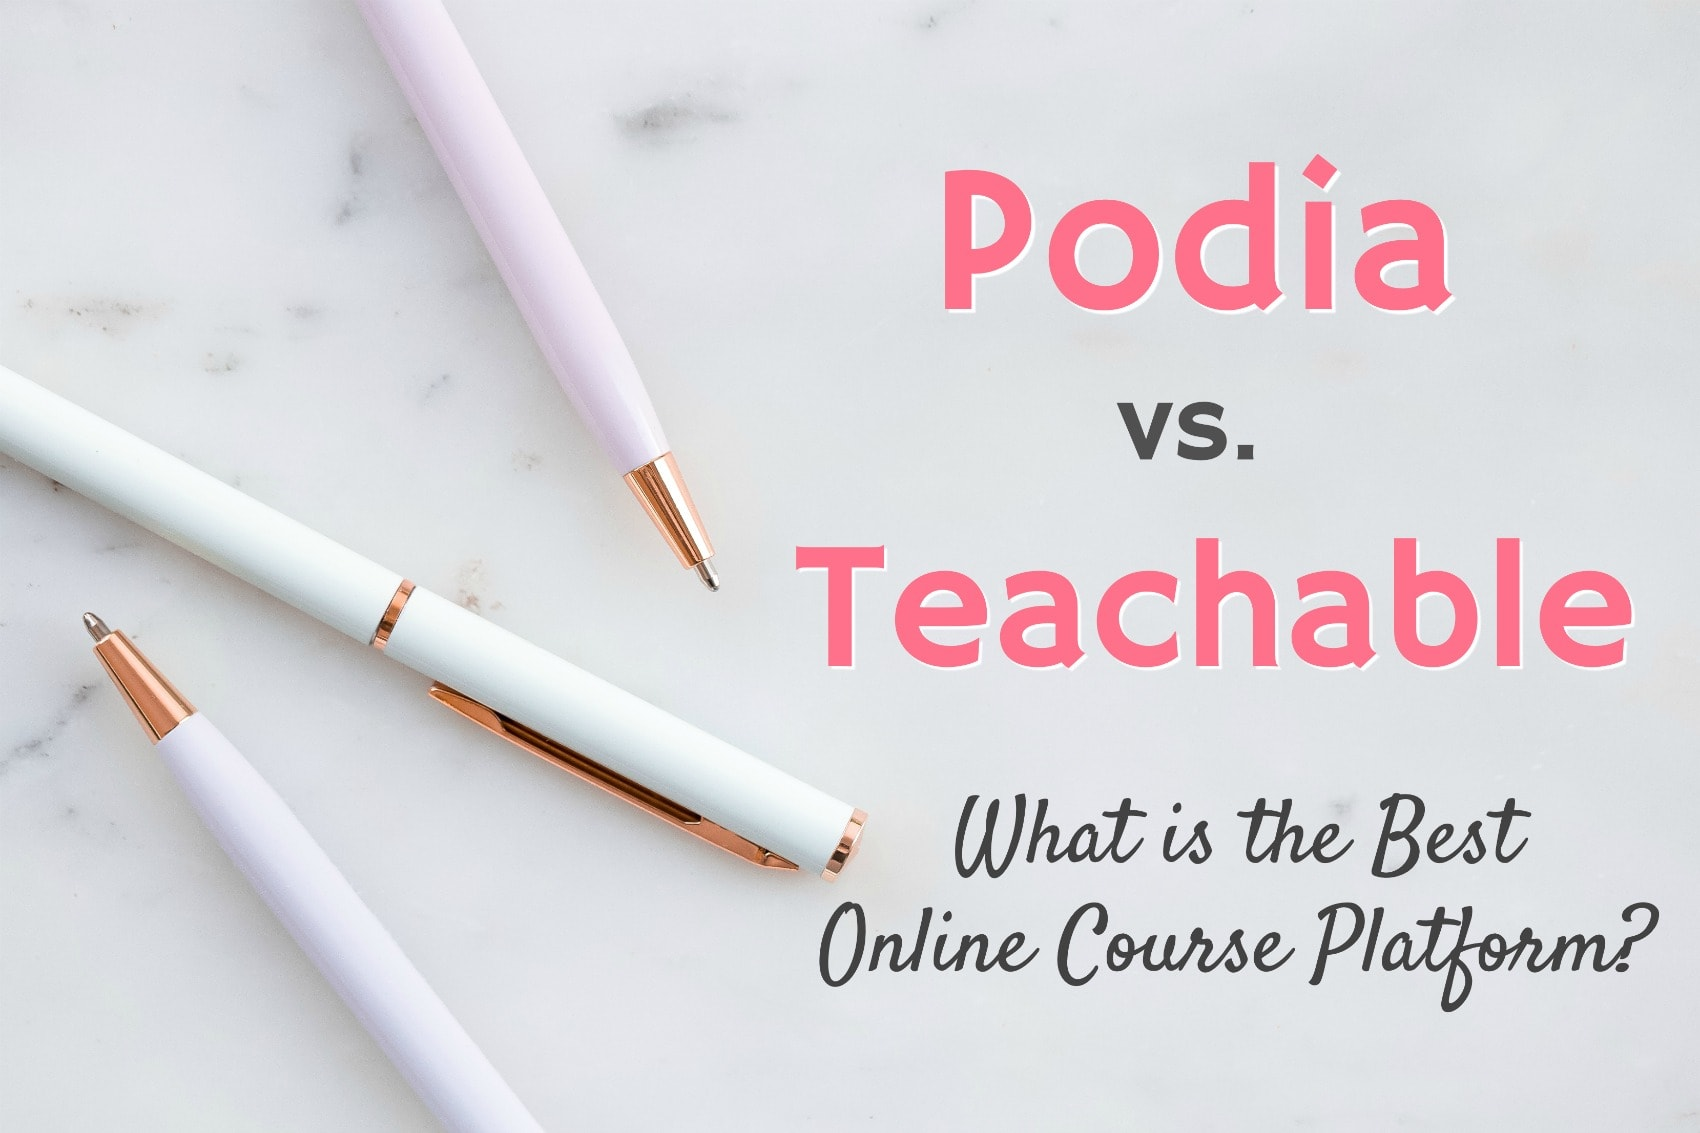 Udemy Vs. Teachable